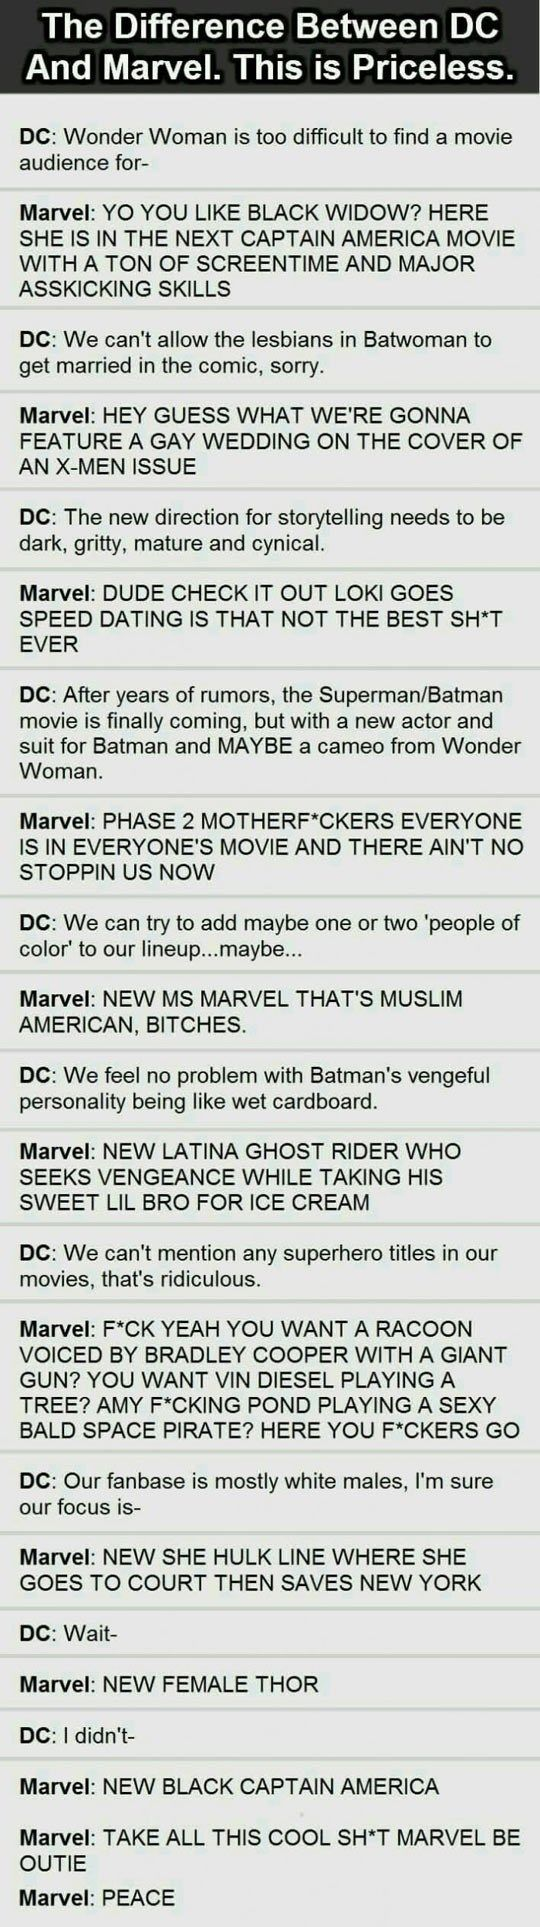 Marvel vs DC, the Real Struggle